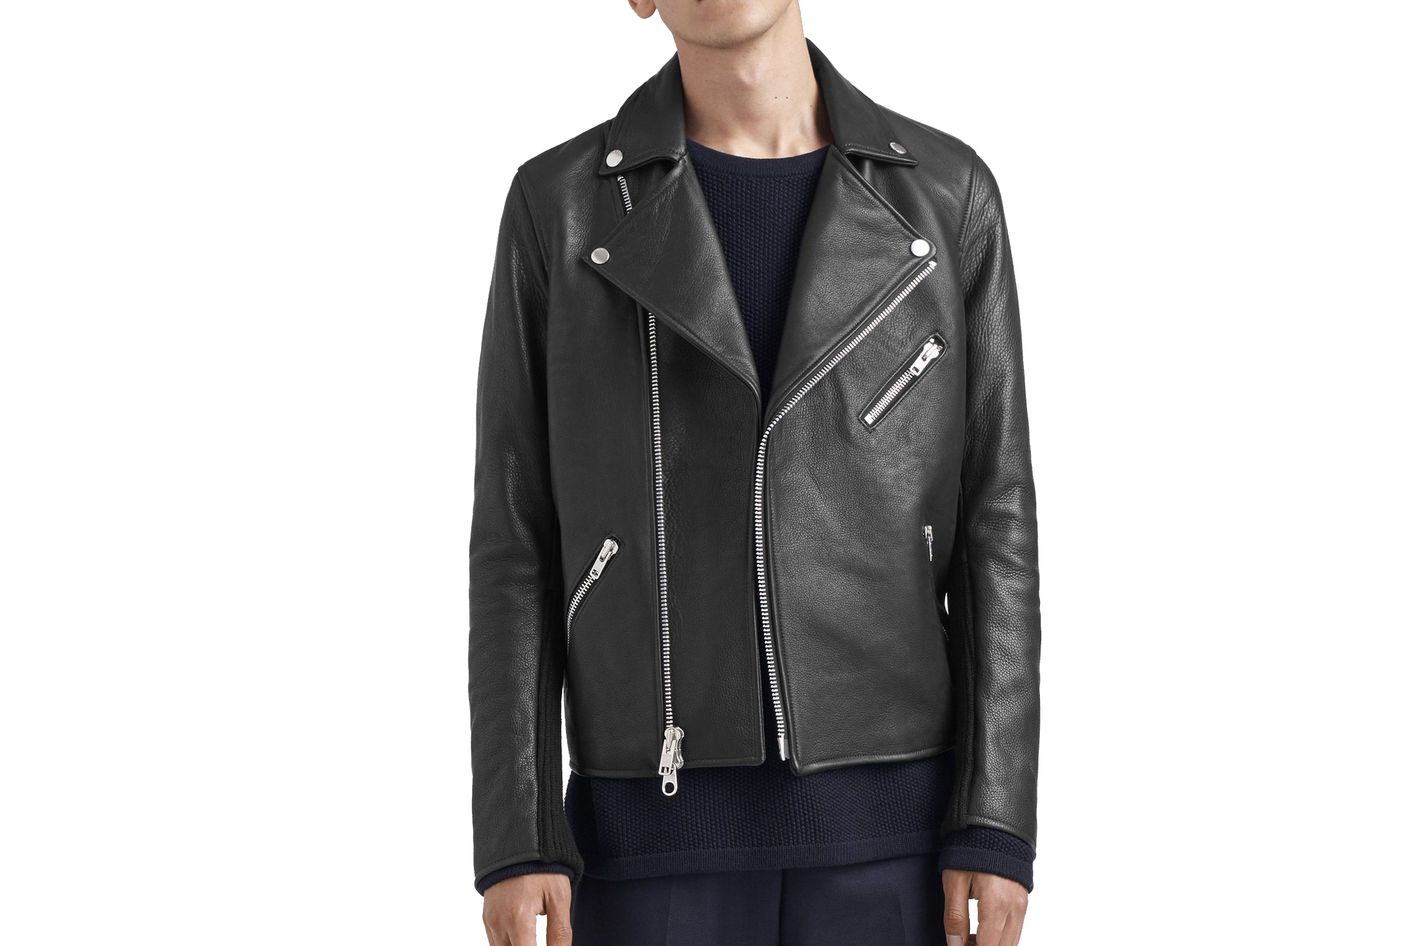 Leather Jackets –Motorcycle Jackets, Military Jackets & More A women's leather jacket is the one essential that Free People thinks every girl must have in her closet. It is always a given that a good leather jacket will look great with whatever you happen to be wearing.